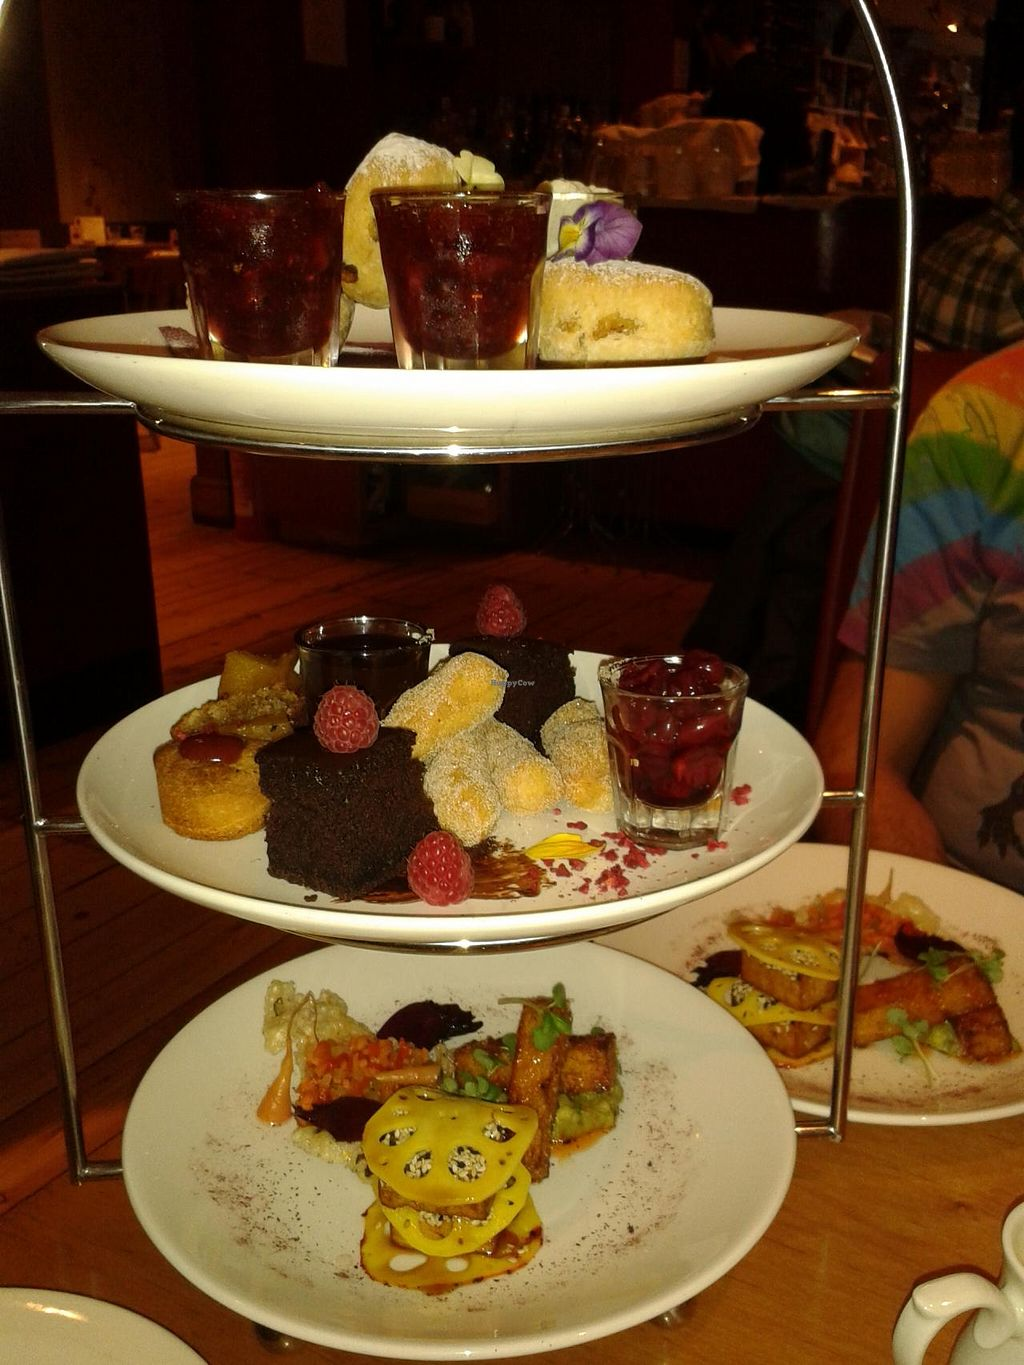 """Photo of Terre a Terre  by <a href=""""/members/profile/jennyc32"""">jennyc32</a> <br/>Vegan afternoon tea <br/> April 28, 2015  - <a href='/contact/abuse/image/625/100544'>Report</a>"""